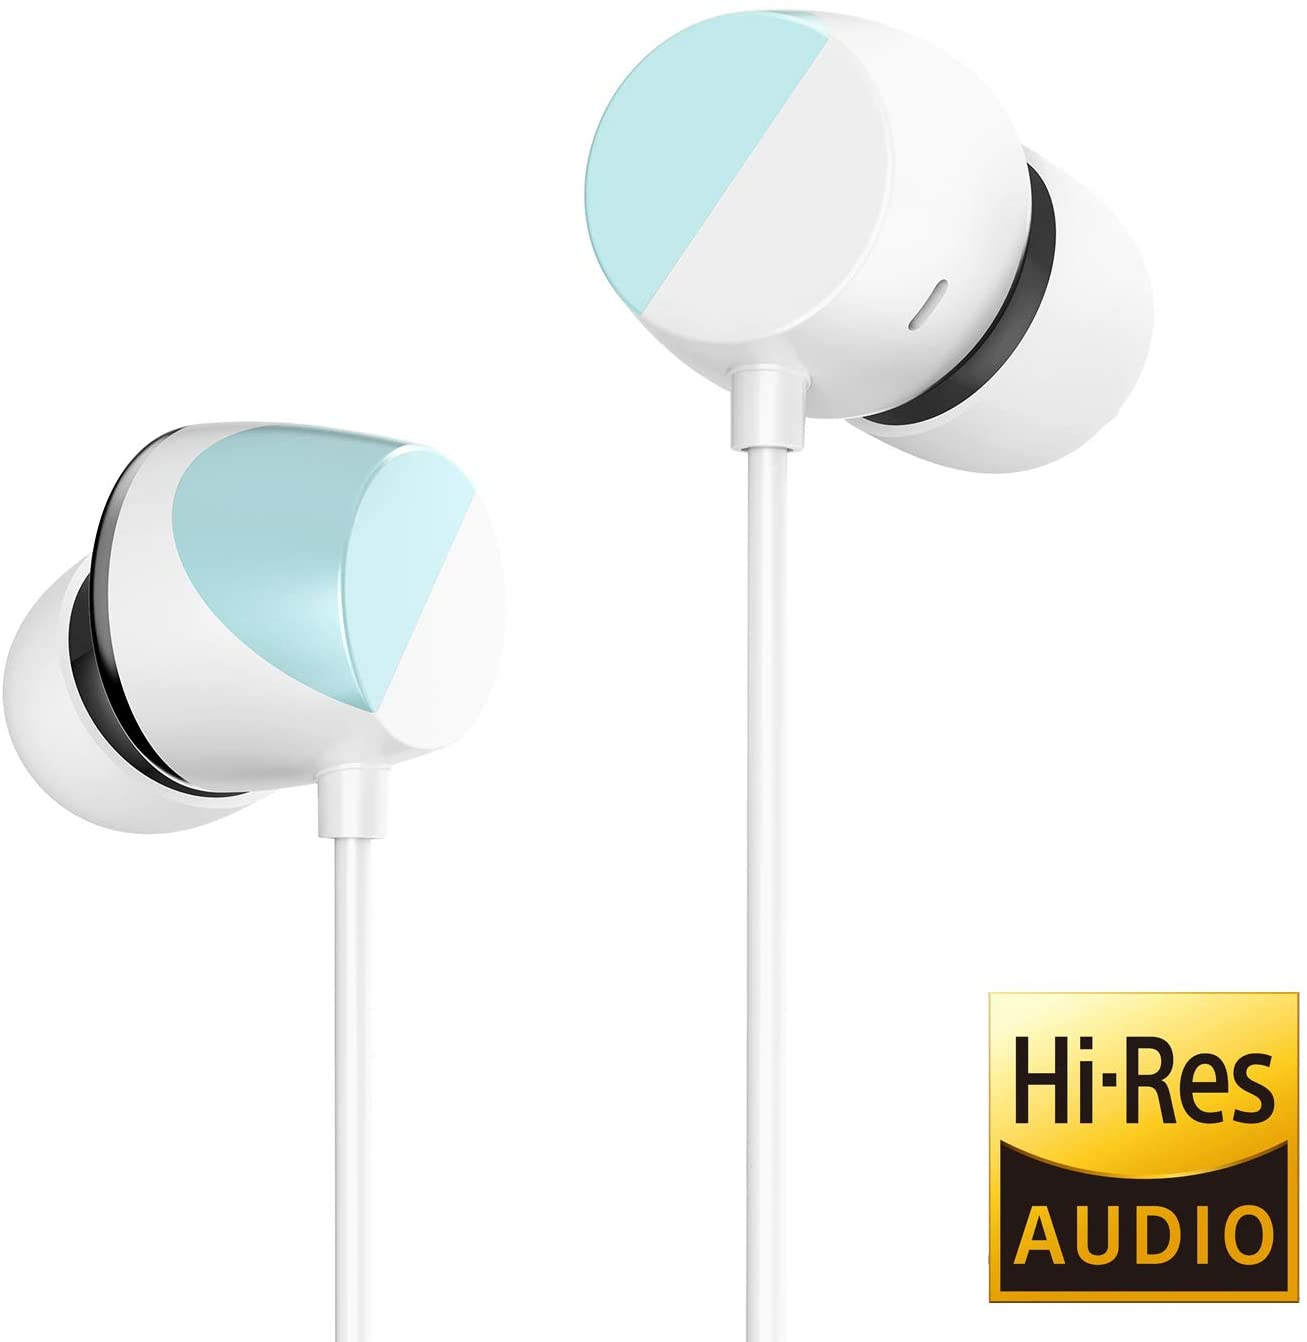 TUNAI Piano Audiophile Earphones - Hi-Res Earbuds with Dual Drivers for Incredible Balanced Sound and Clear Treble - Great for Workouts at The Gym, Sports, Listening at Home (Polar Blue)